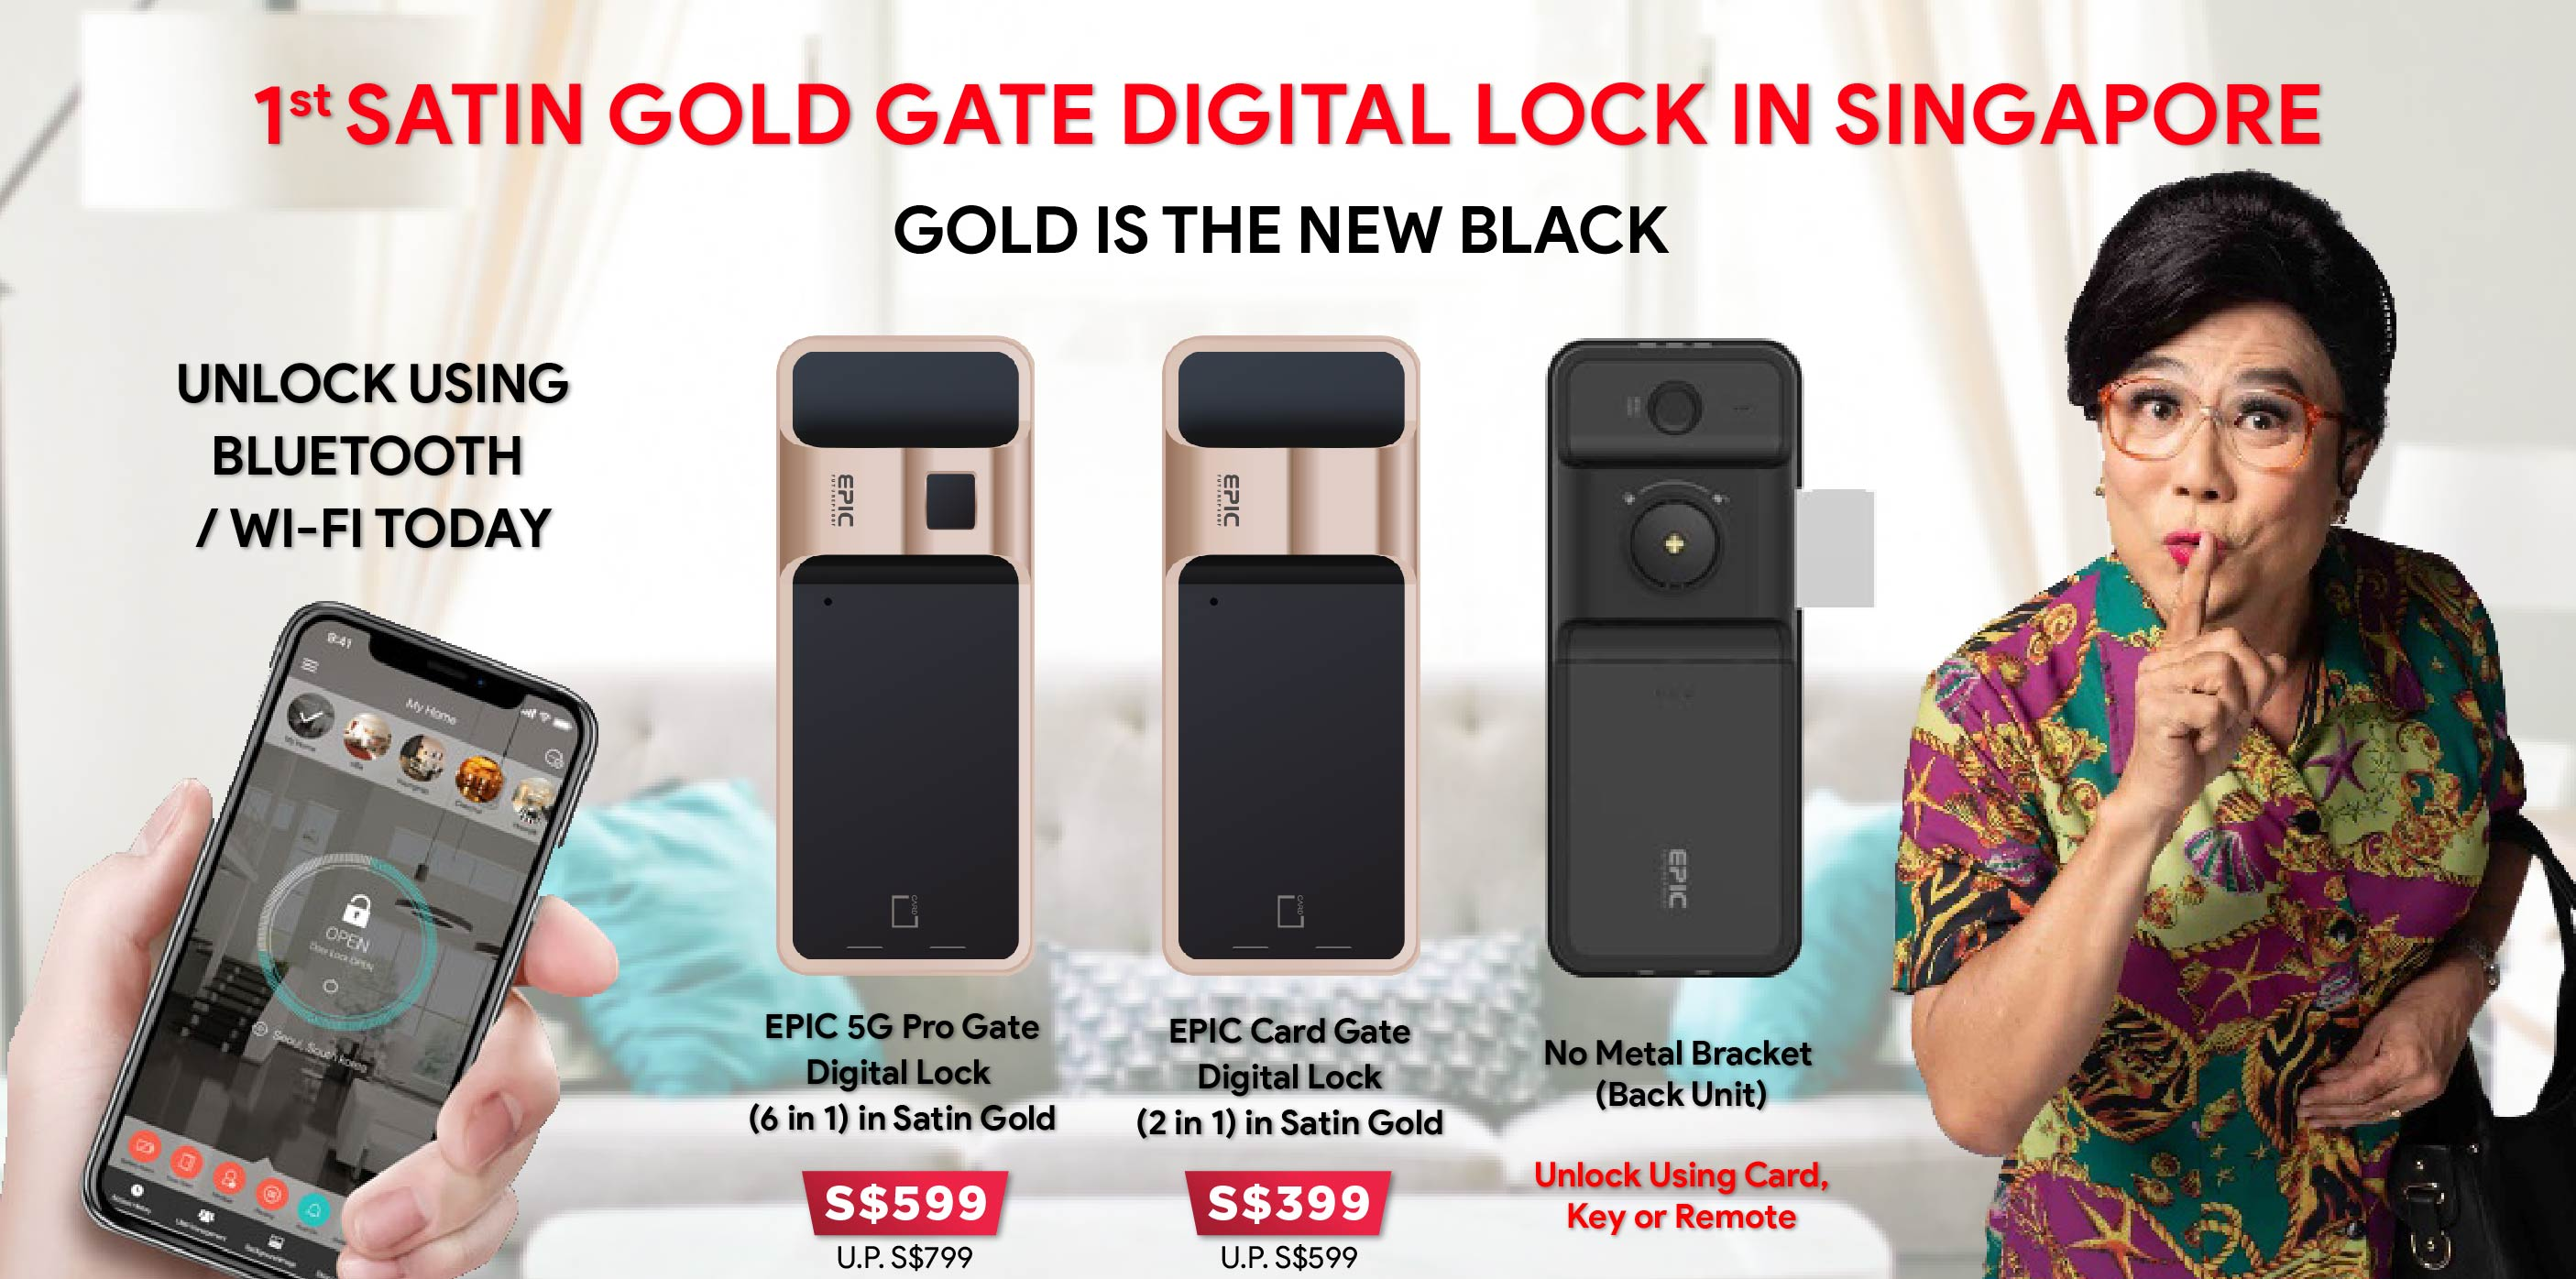 Buy Satin Gold Gate Digital Lock - HDB Gate @ My Digital Lock. Call 9067 7990